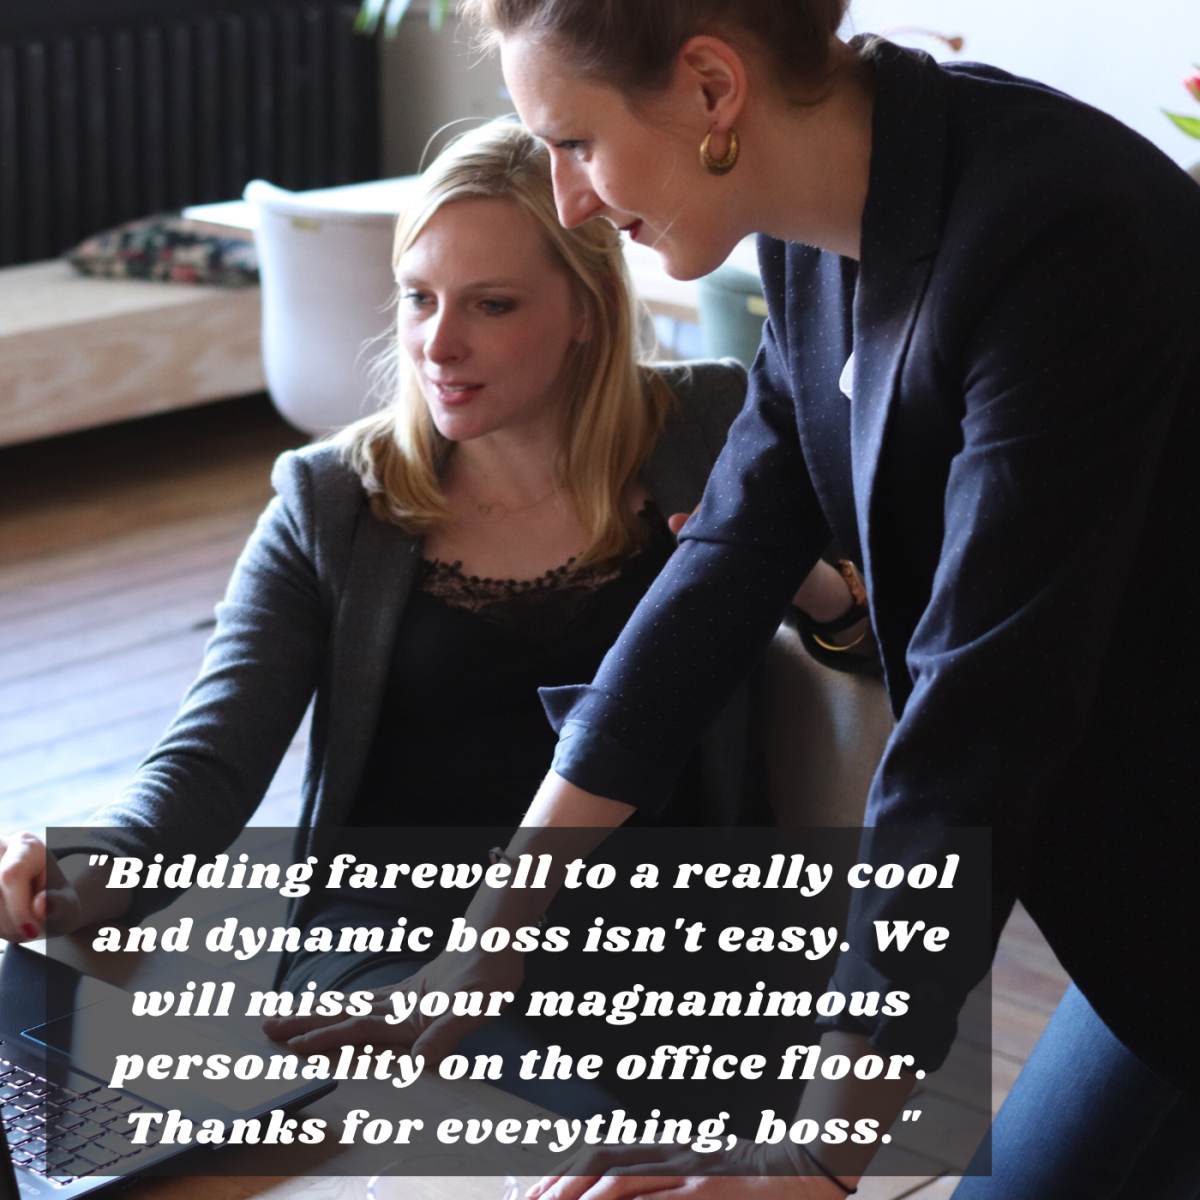 """""""Bidding farewell to a really cool and dynamic boss isn't easy. We will miss your magnanimous personality on the office floor. Thanks for everything, boss."""""""